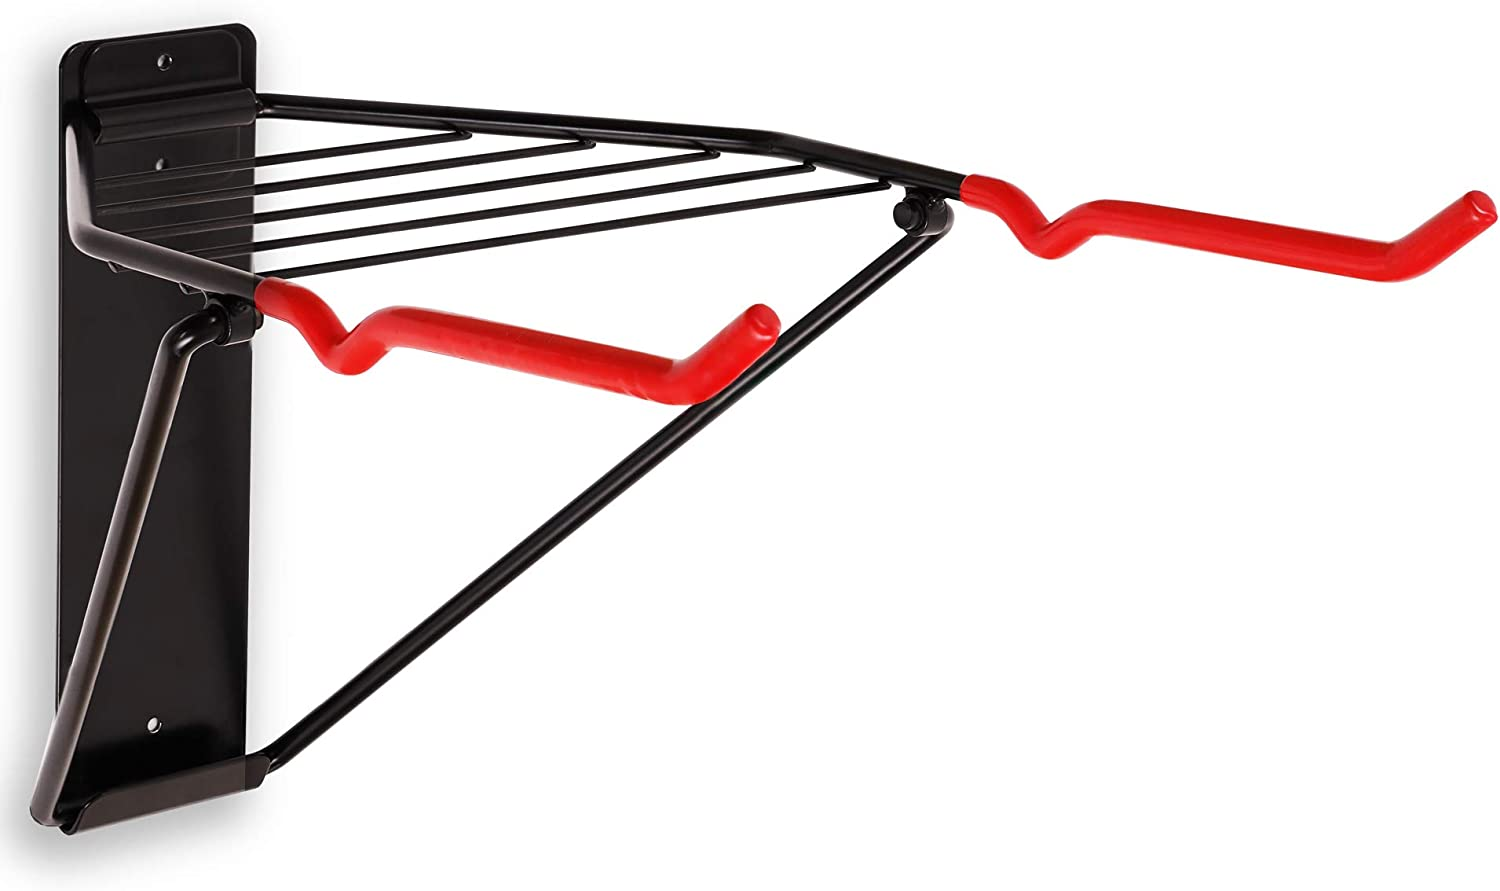 Wall Mount 2 Bikes Horizontal Indoor Storage Folding Rack Bicycle in Garage or Home – Cycling Hanger – Secure Holder – Hook for Road MTB Bikes -Shelf for Additional Storage of Helmets Clothing Shoes